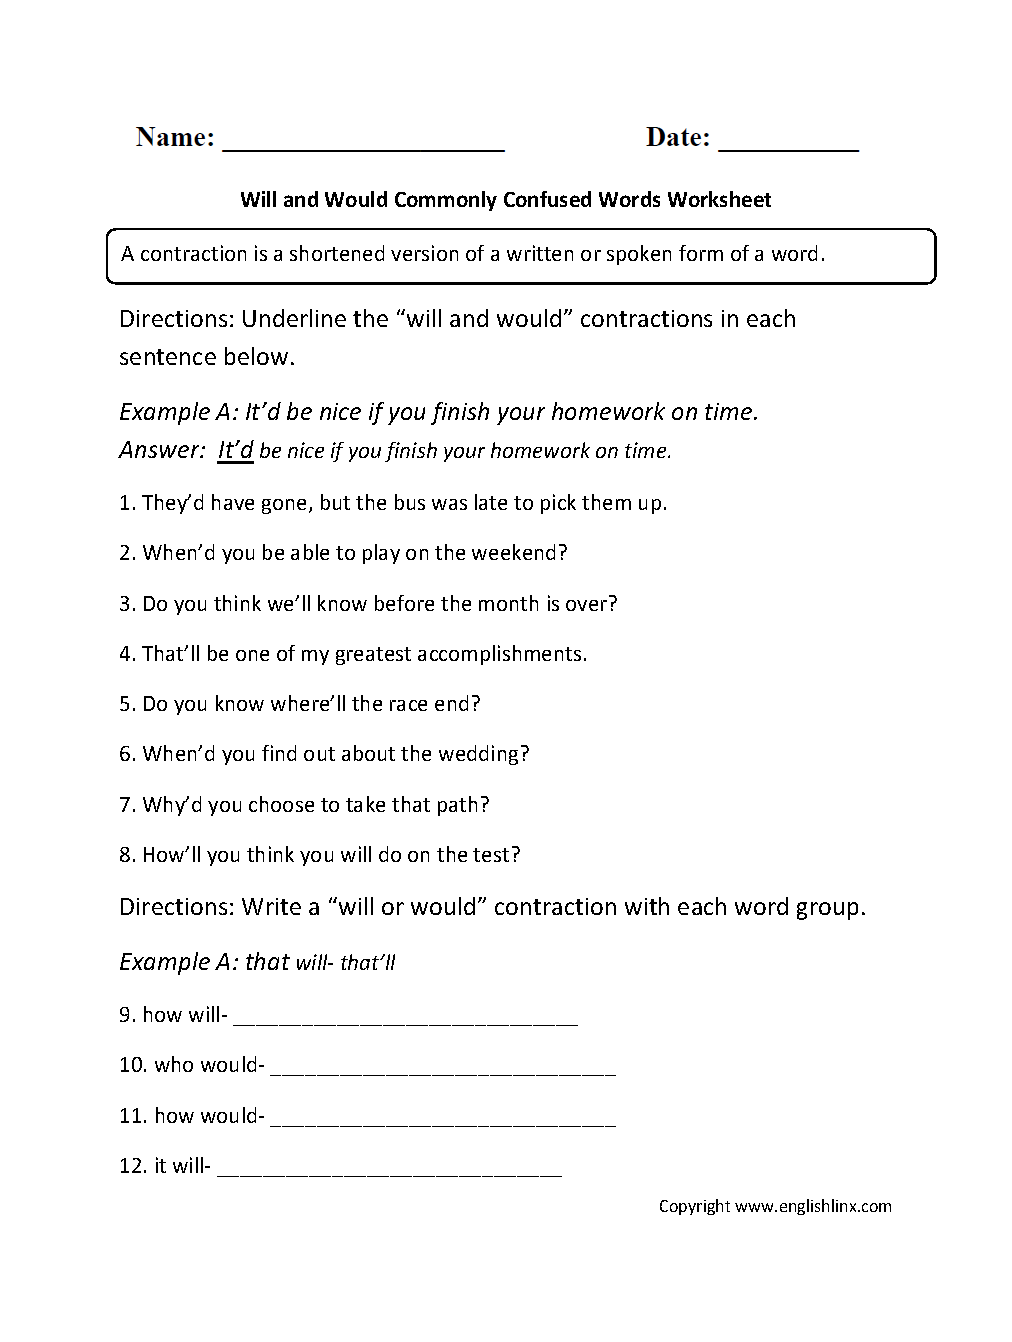 Will And Would Commonly Confused Words Worksheets Commonly Confused Words Word Usage Words [ 1342 x 1012 Pixel ]